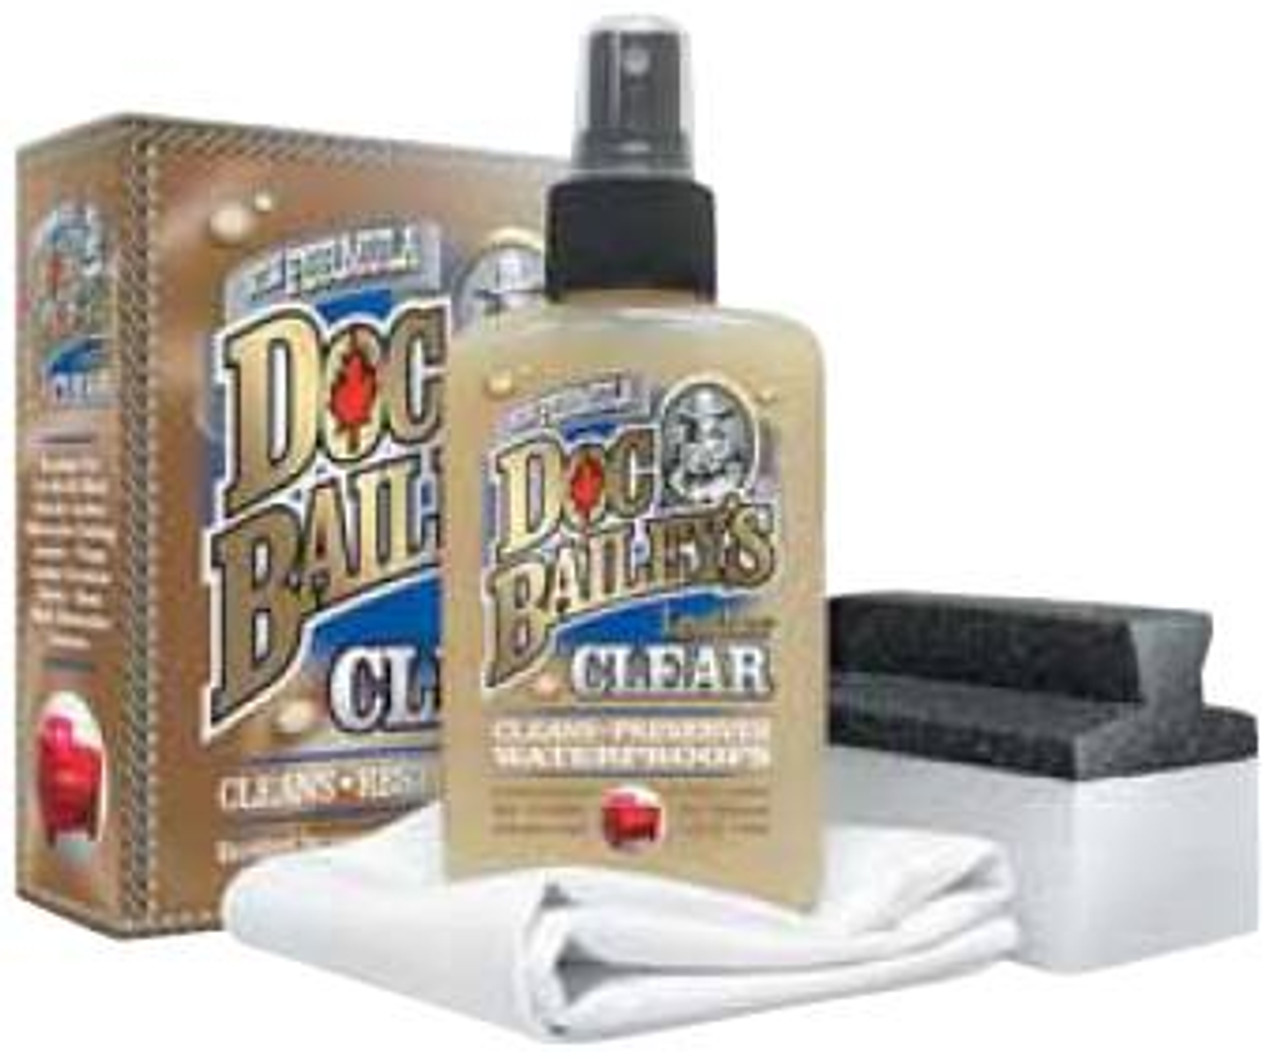 The Original Doc Bailey's Leather Clear Kit